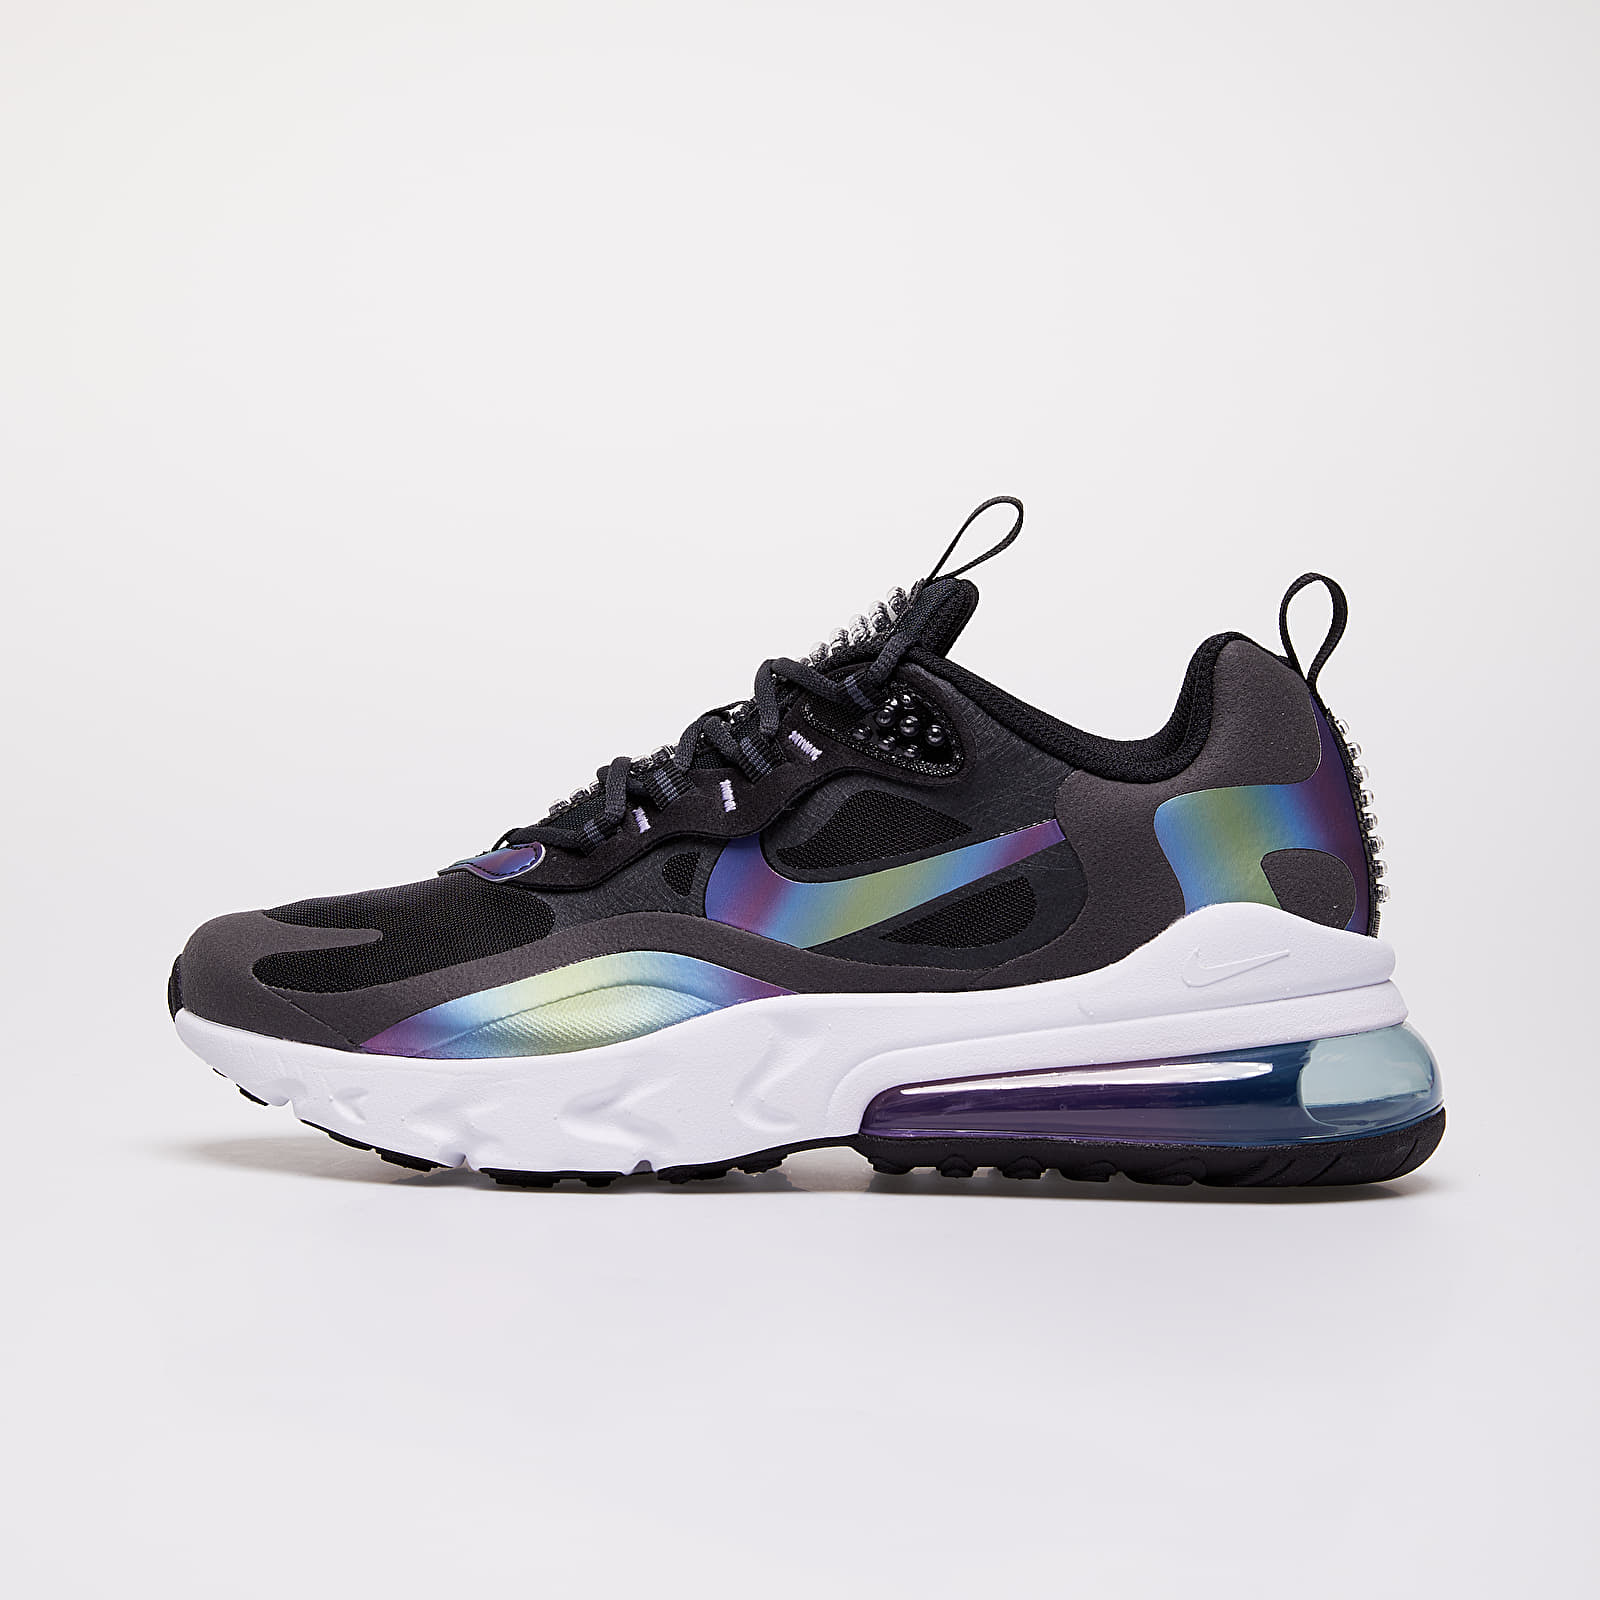 Nike Air Max 270 React 20 (GS) Dk Smoke Grey Multi Color Black White | Footshop